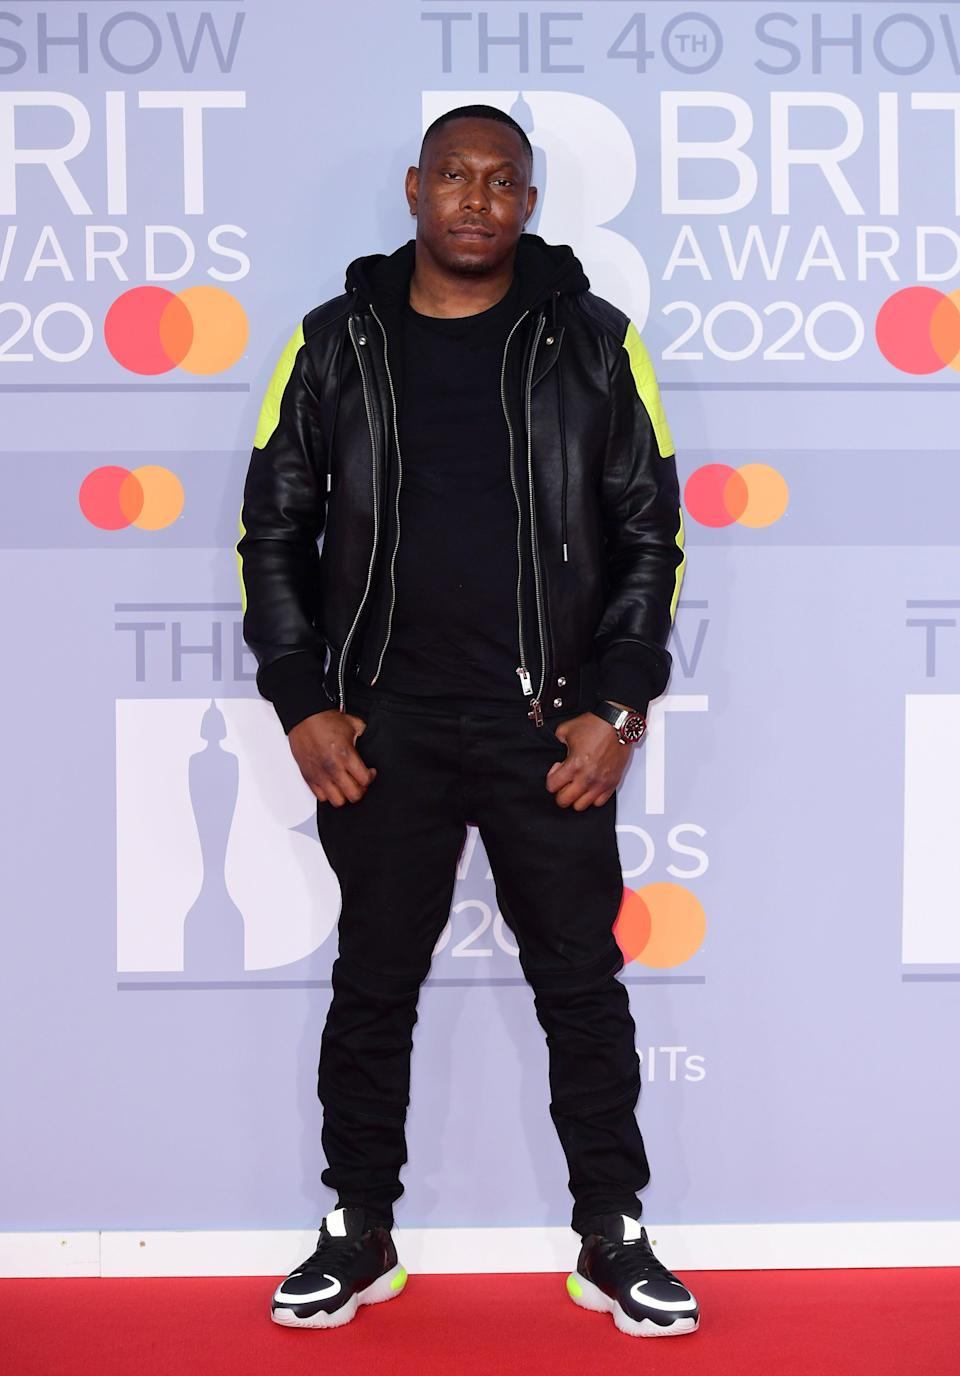 Dizzee Rascal arriving at the 2020 Brit Awards at the O2 Arena in London (Ian West/PA) (PA Archive)